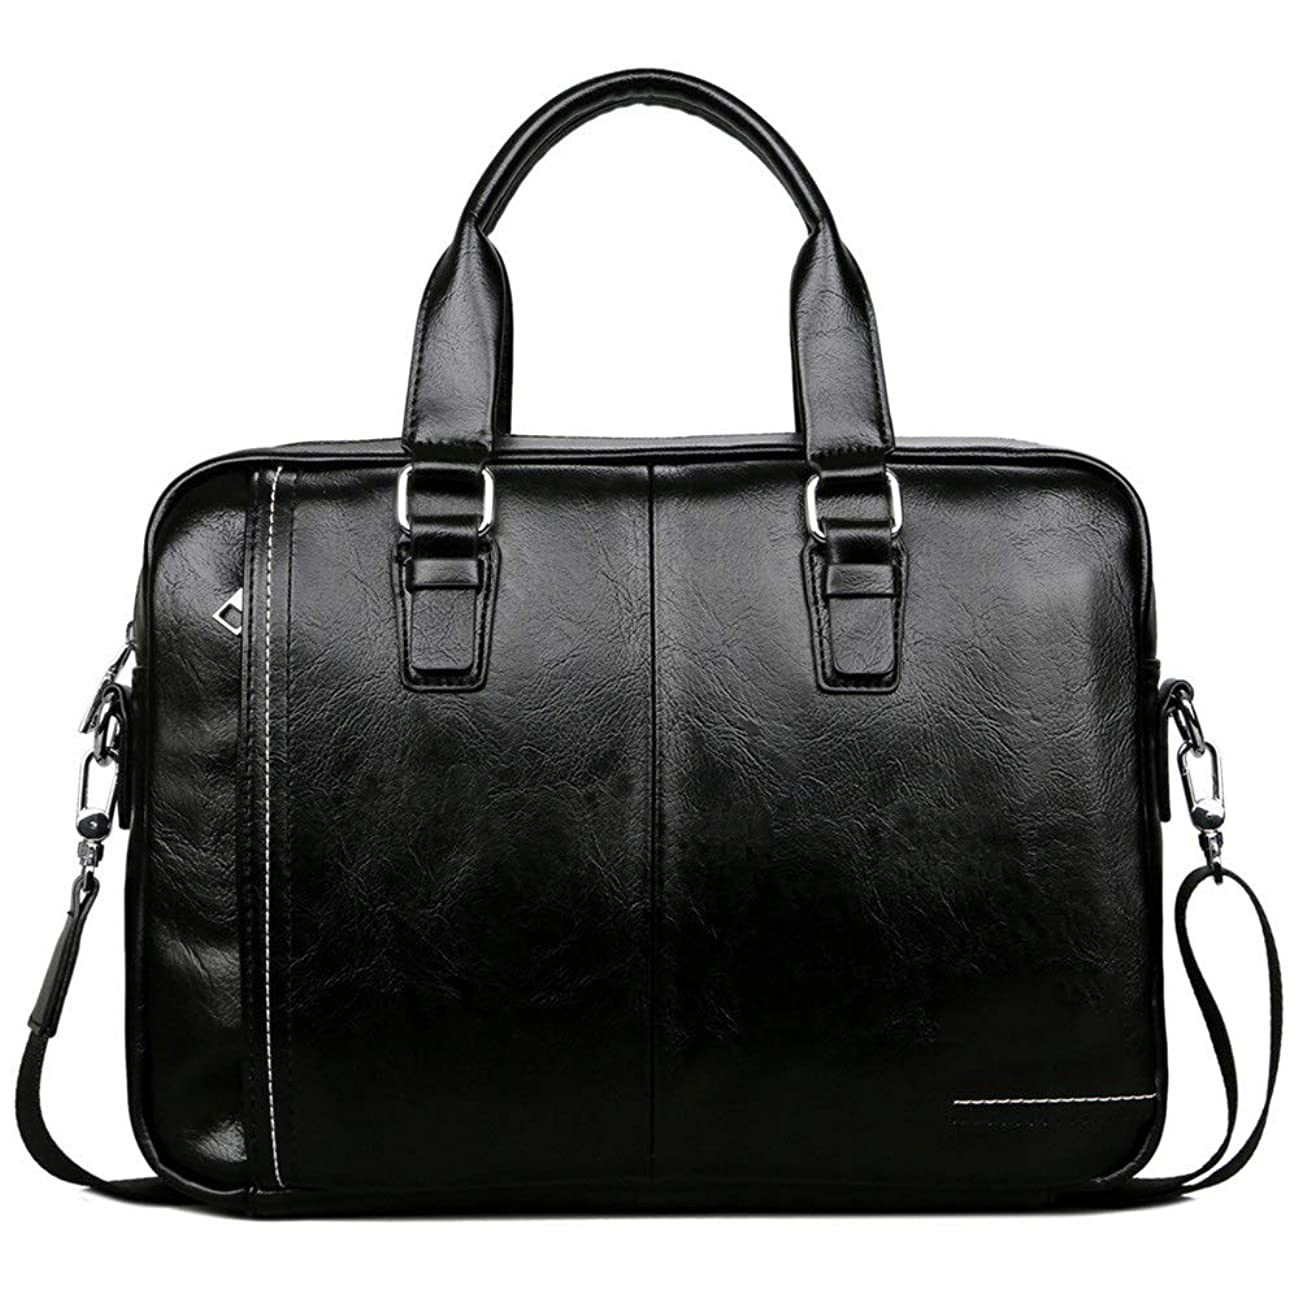 Zxcvlina Laptop Briefcase PU Leather Laptop Bag with Handle and Zip Pocket Men's Briefcase Business Tote